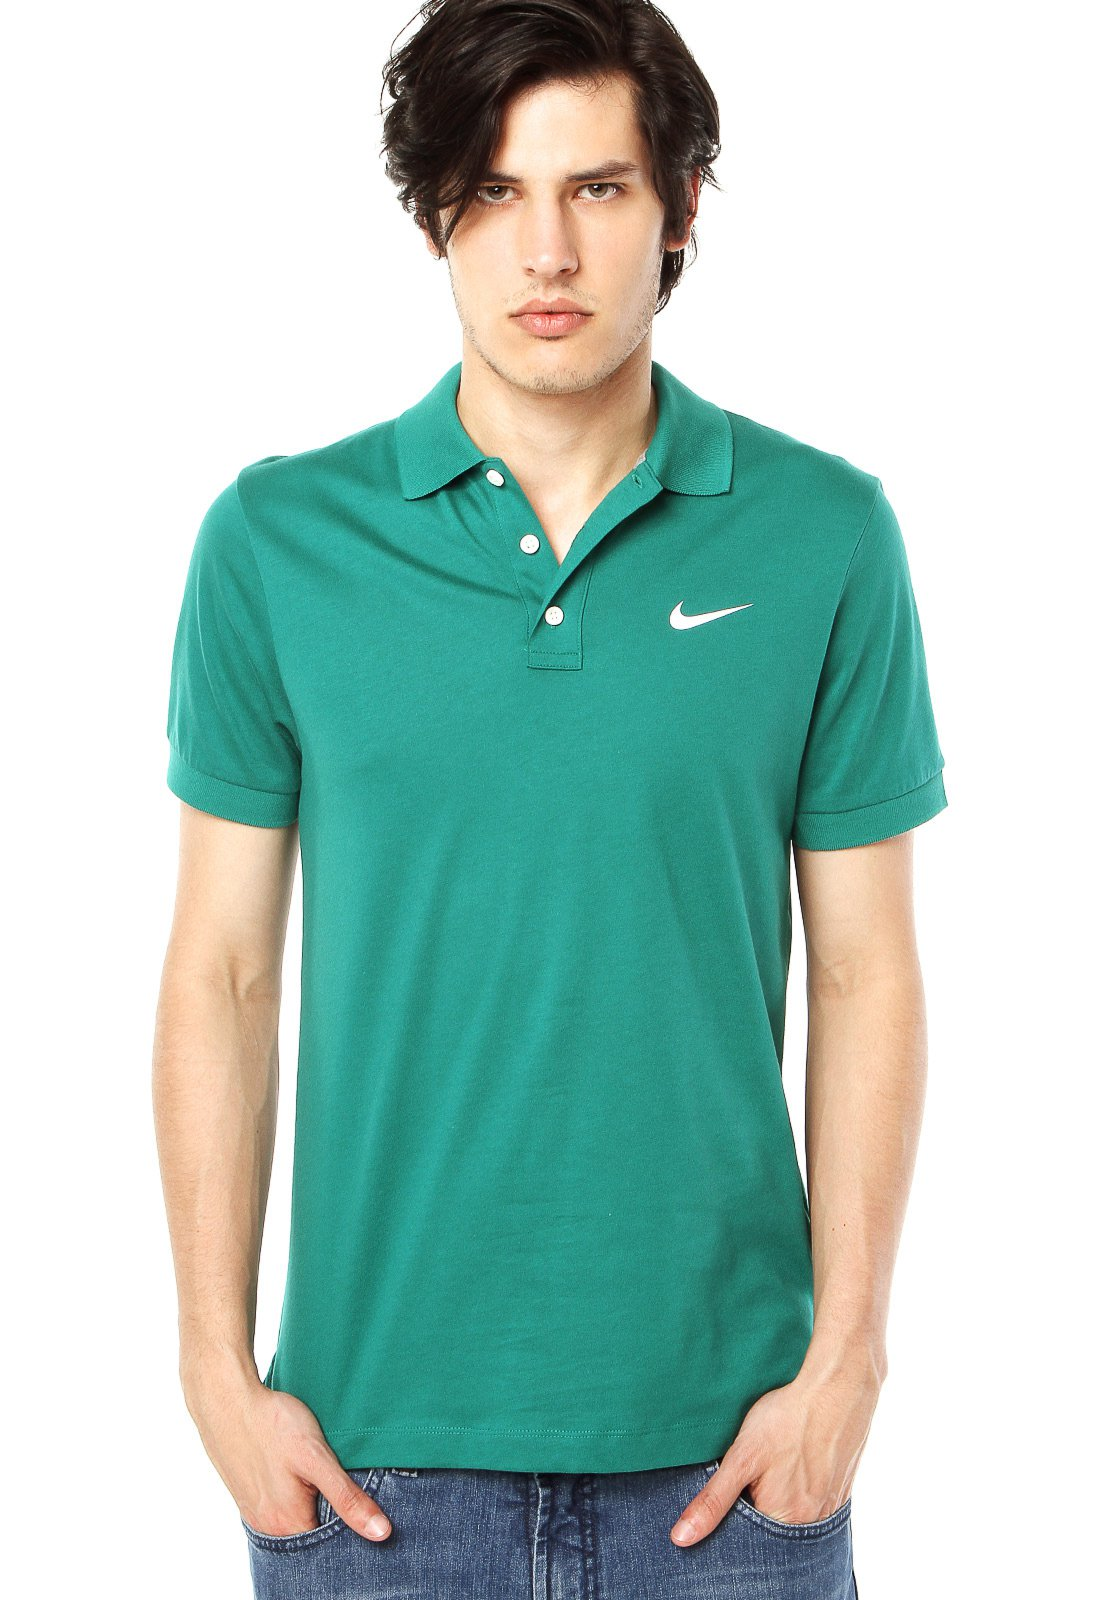 Are depressed the Internet further  Camisa Polo Nike Matchup Jsy Mystic Verde - Compre Agora | Kanui Brasil